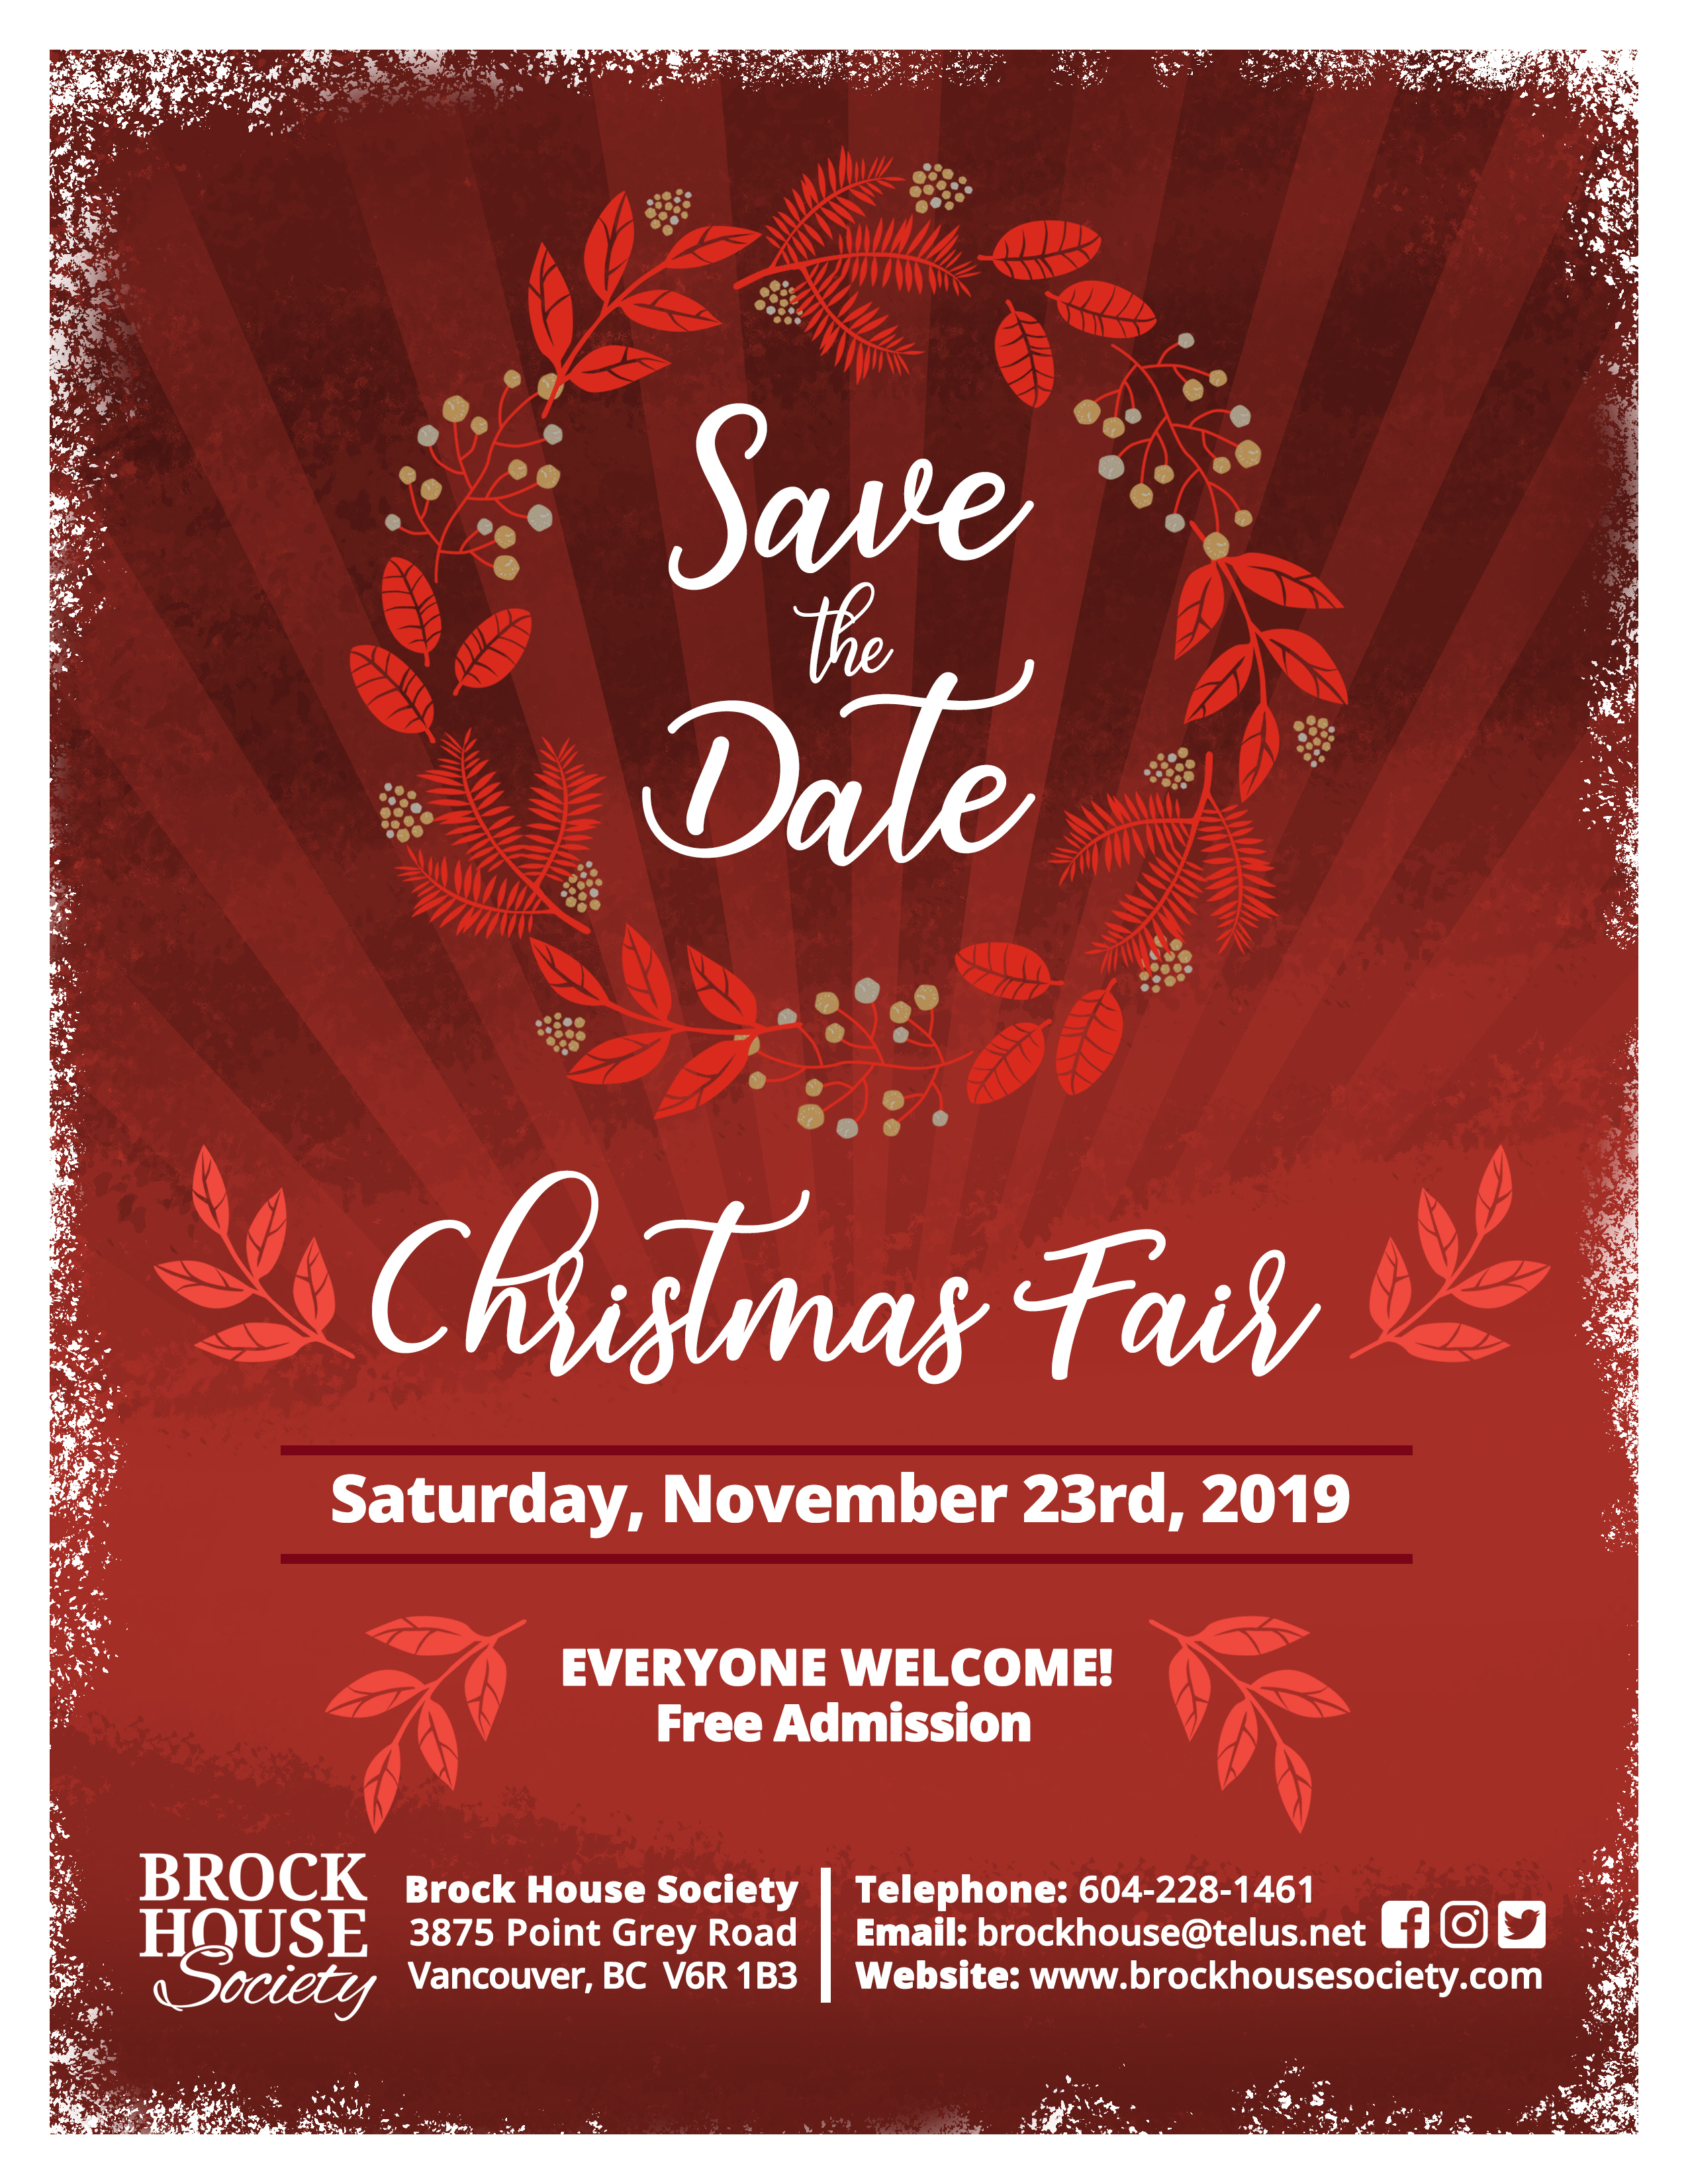 Christmas Graphics 2019.2019 Christmas Fair Events Brock House Society